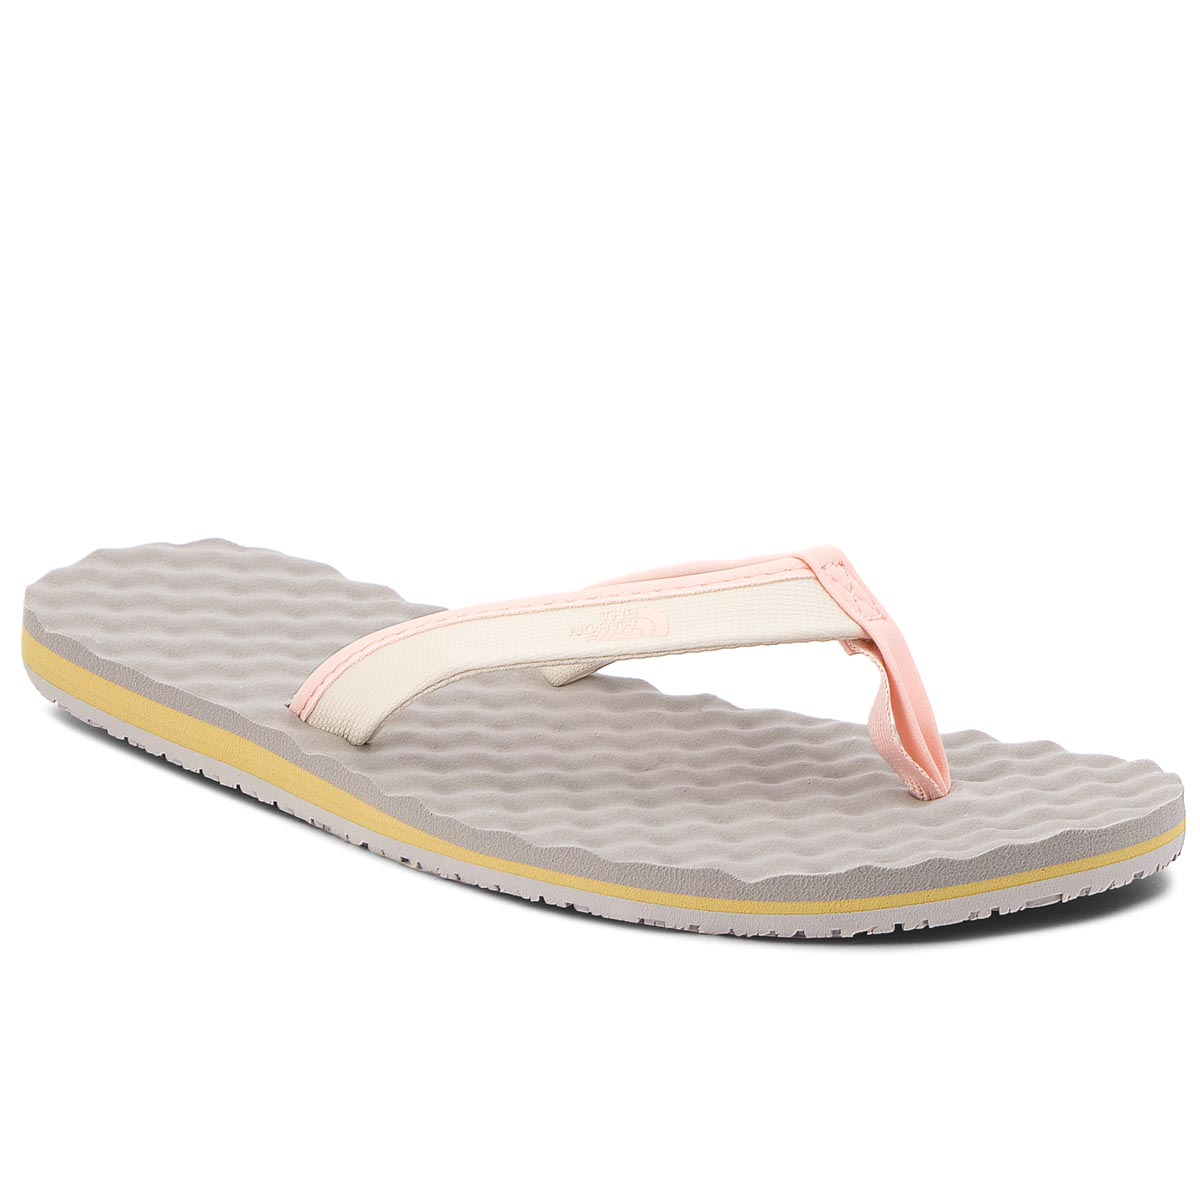 Flip flop THE NORTH FACE - Base Camp Mini T0A06Q3QY Vntgwt/Evngsdpk